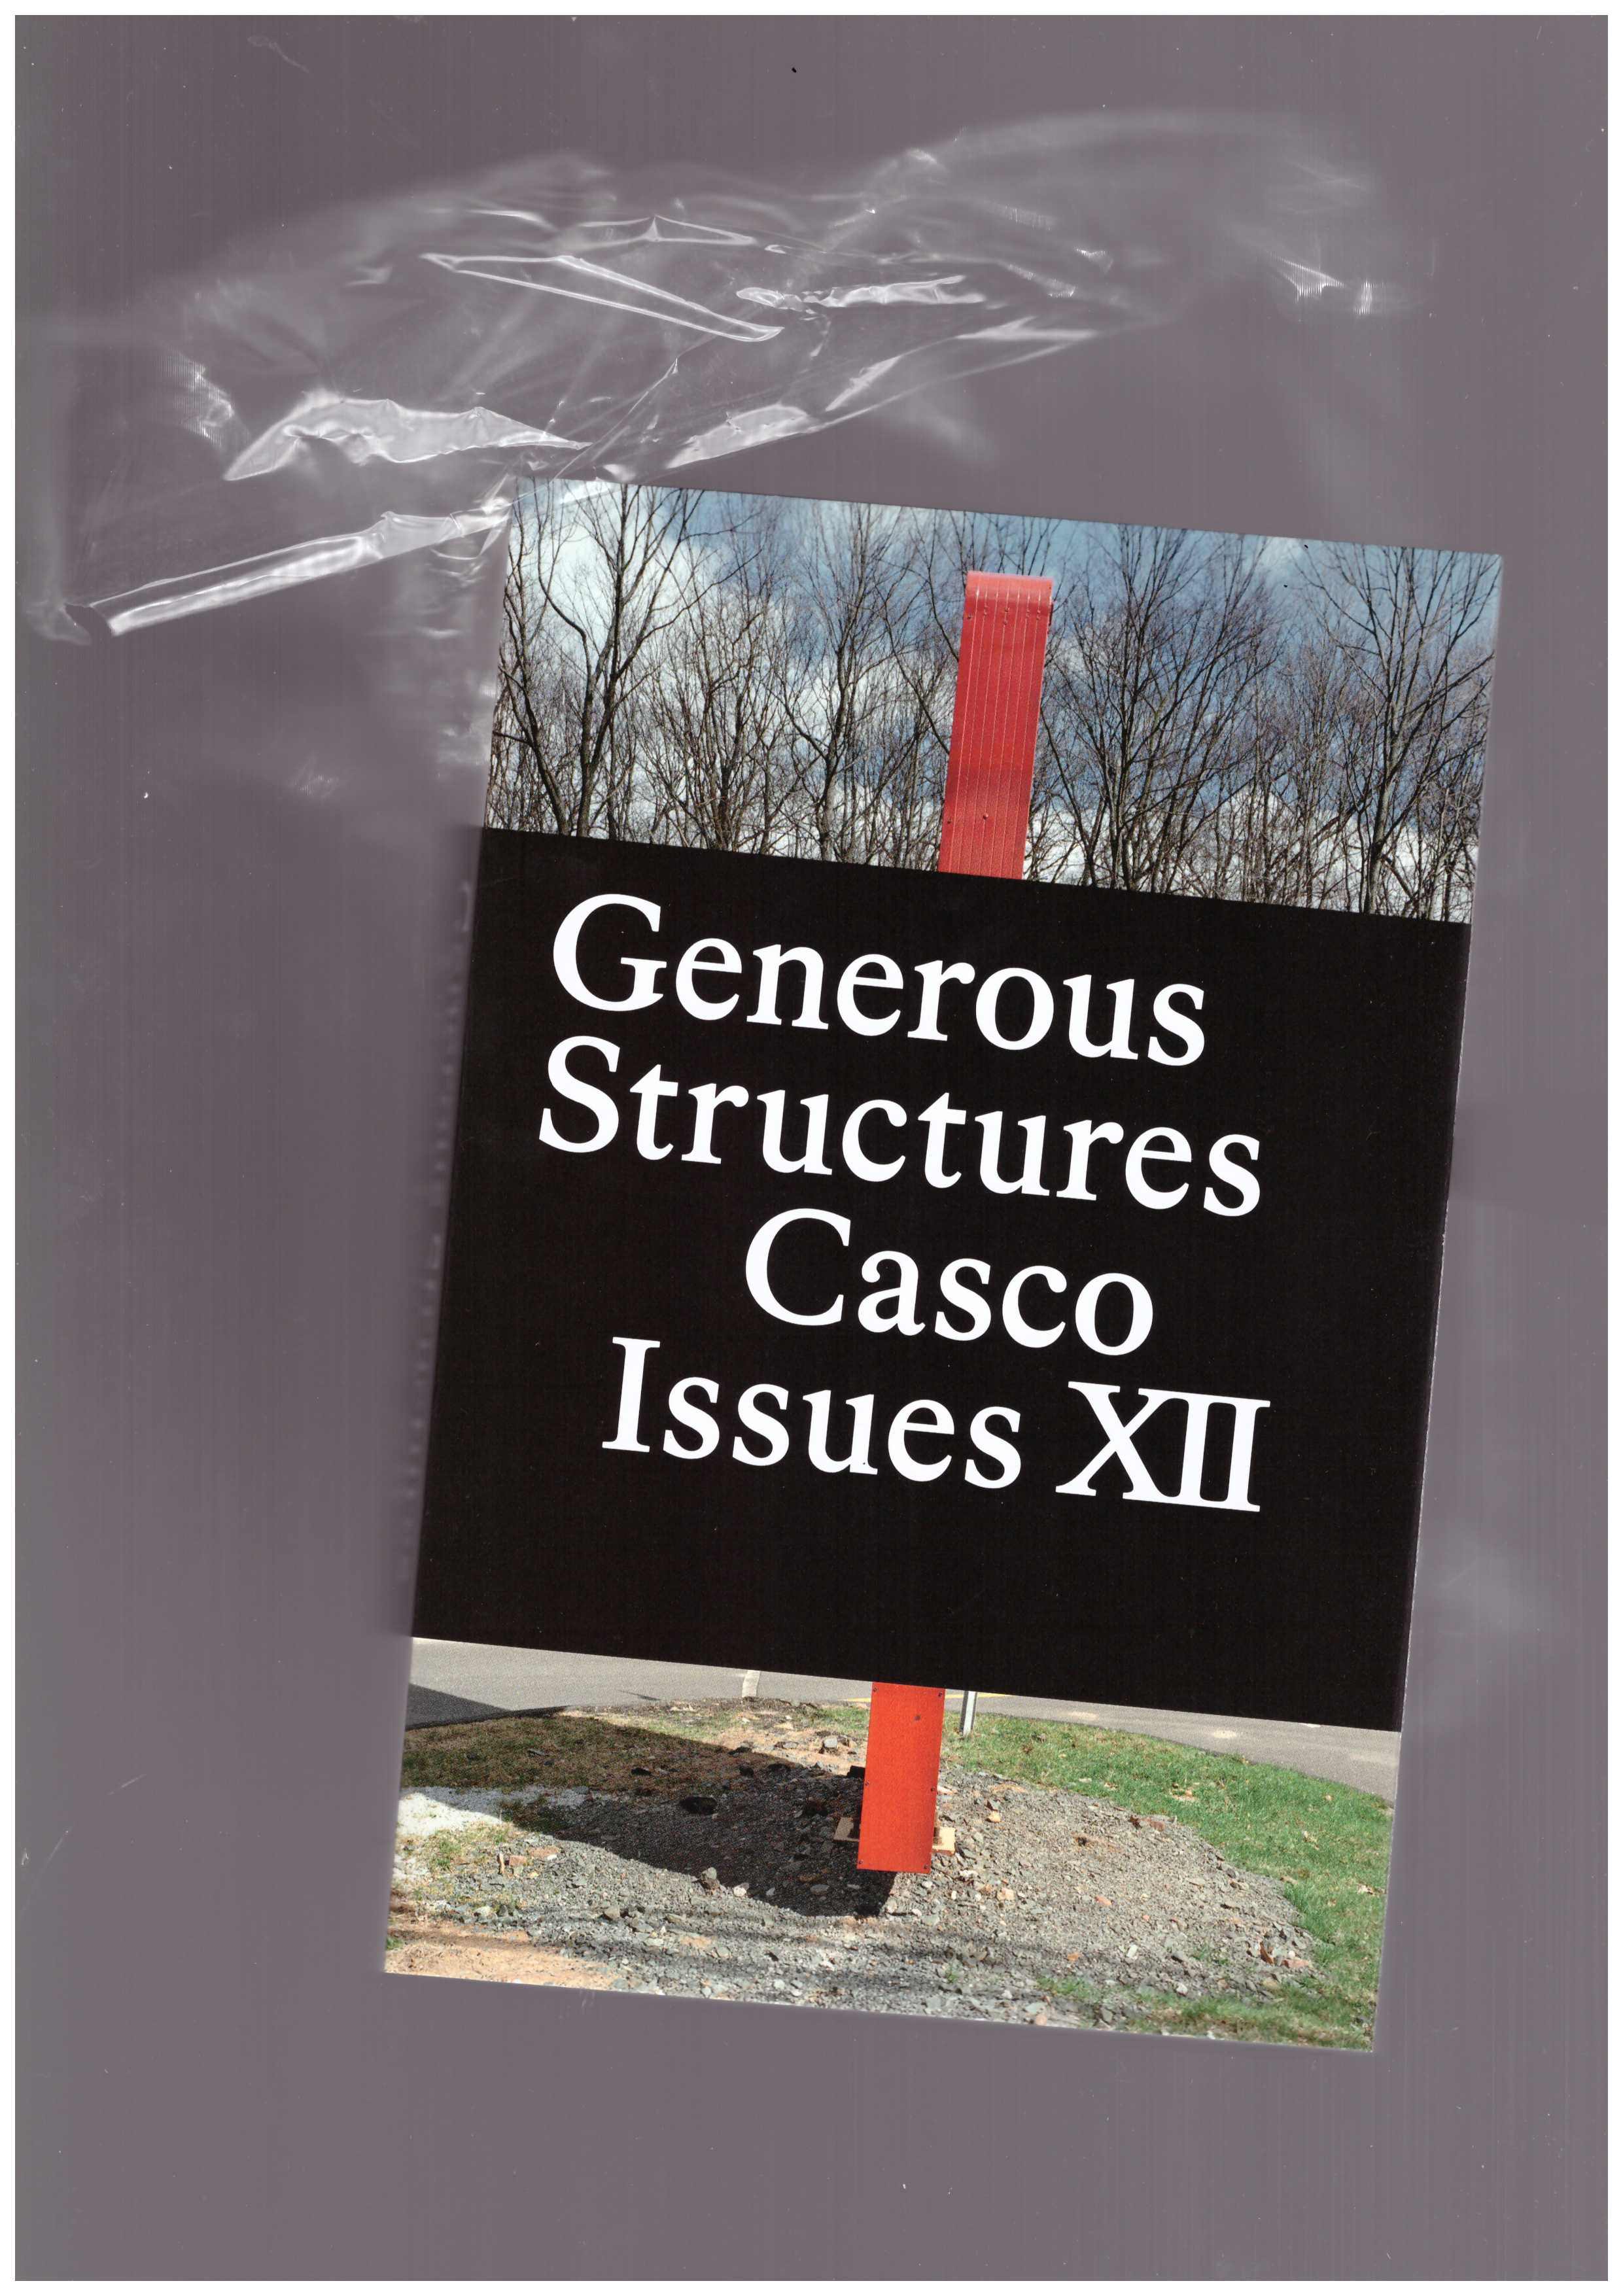 CHOI, Binna; WIEDER, Axel (eds.) - Casco Issues #12 - Generous Structures